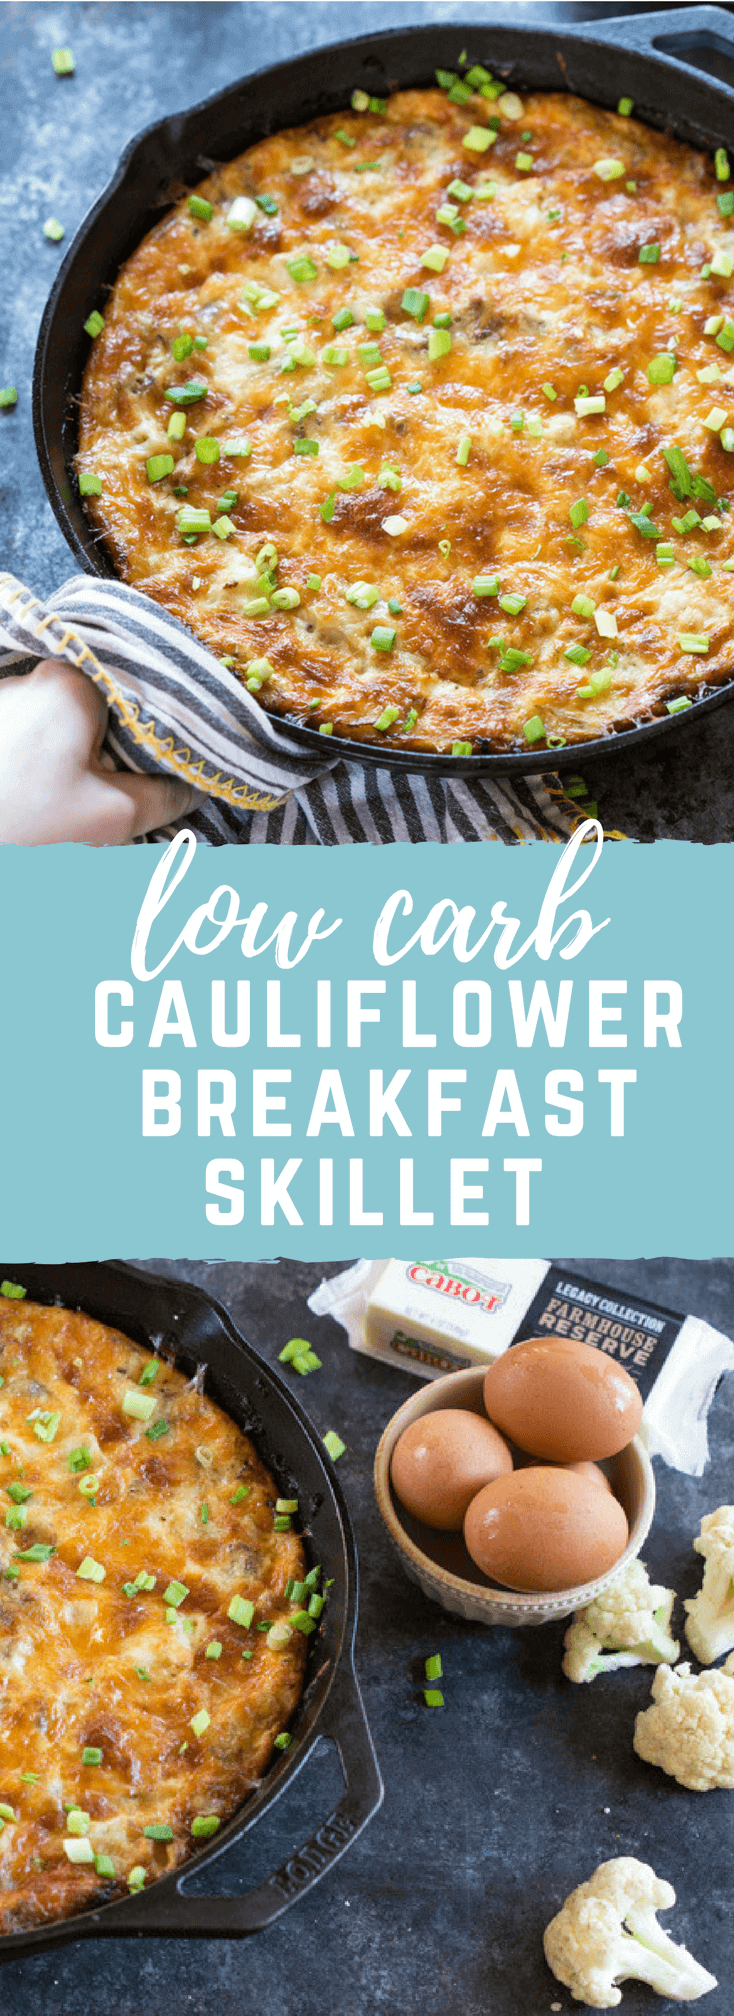 This Cauliflower Breakfast Skillet Casserole is protein packed thanks to chicken sausage, eggs and Cabot cheese. LOVE this savory lower carb breakfast-- I'm looking at you cauliflower! Meal prep this recipe at the beginning of the week and store slices in airtight containers for a convenient breakfast on the go!